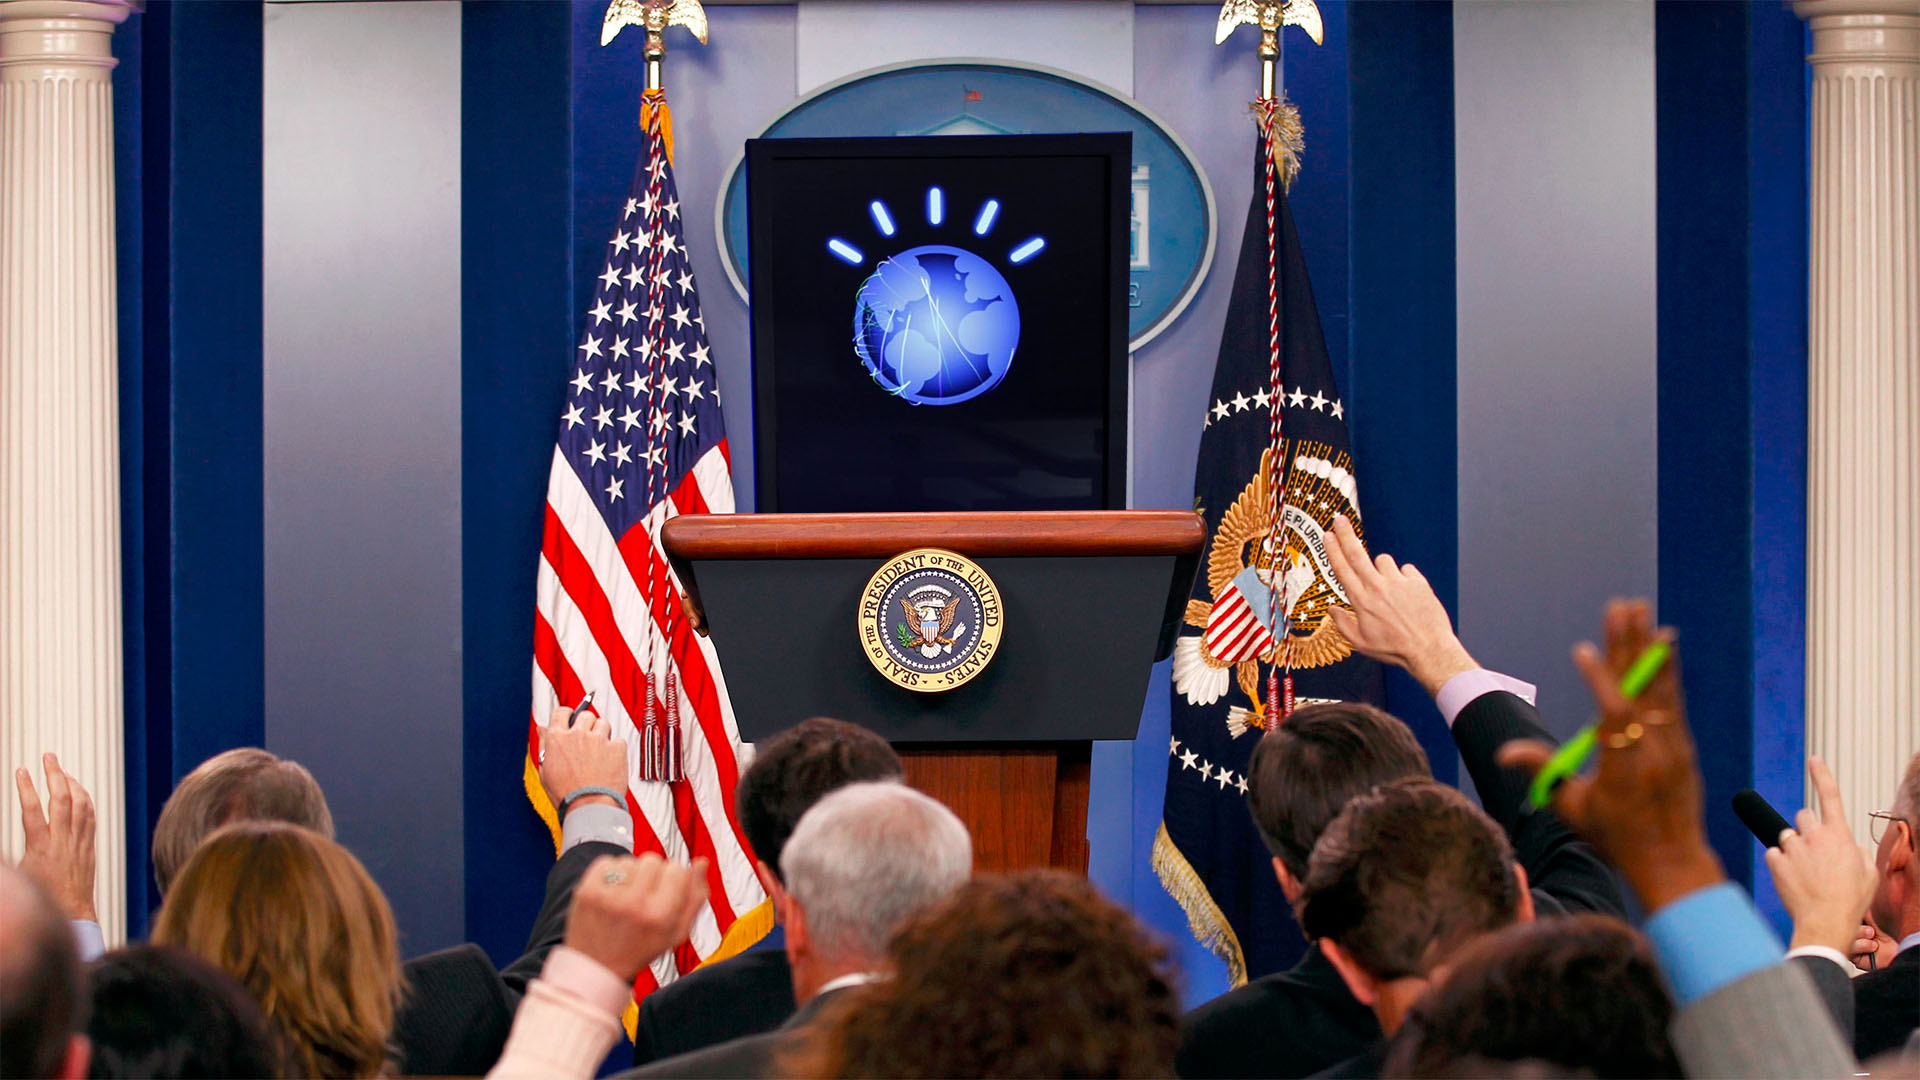 Watson gives a press conference in the White House